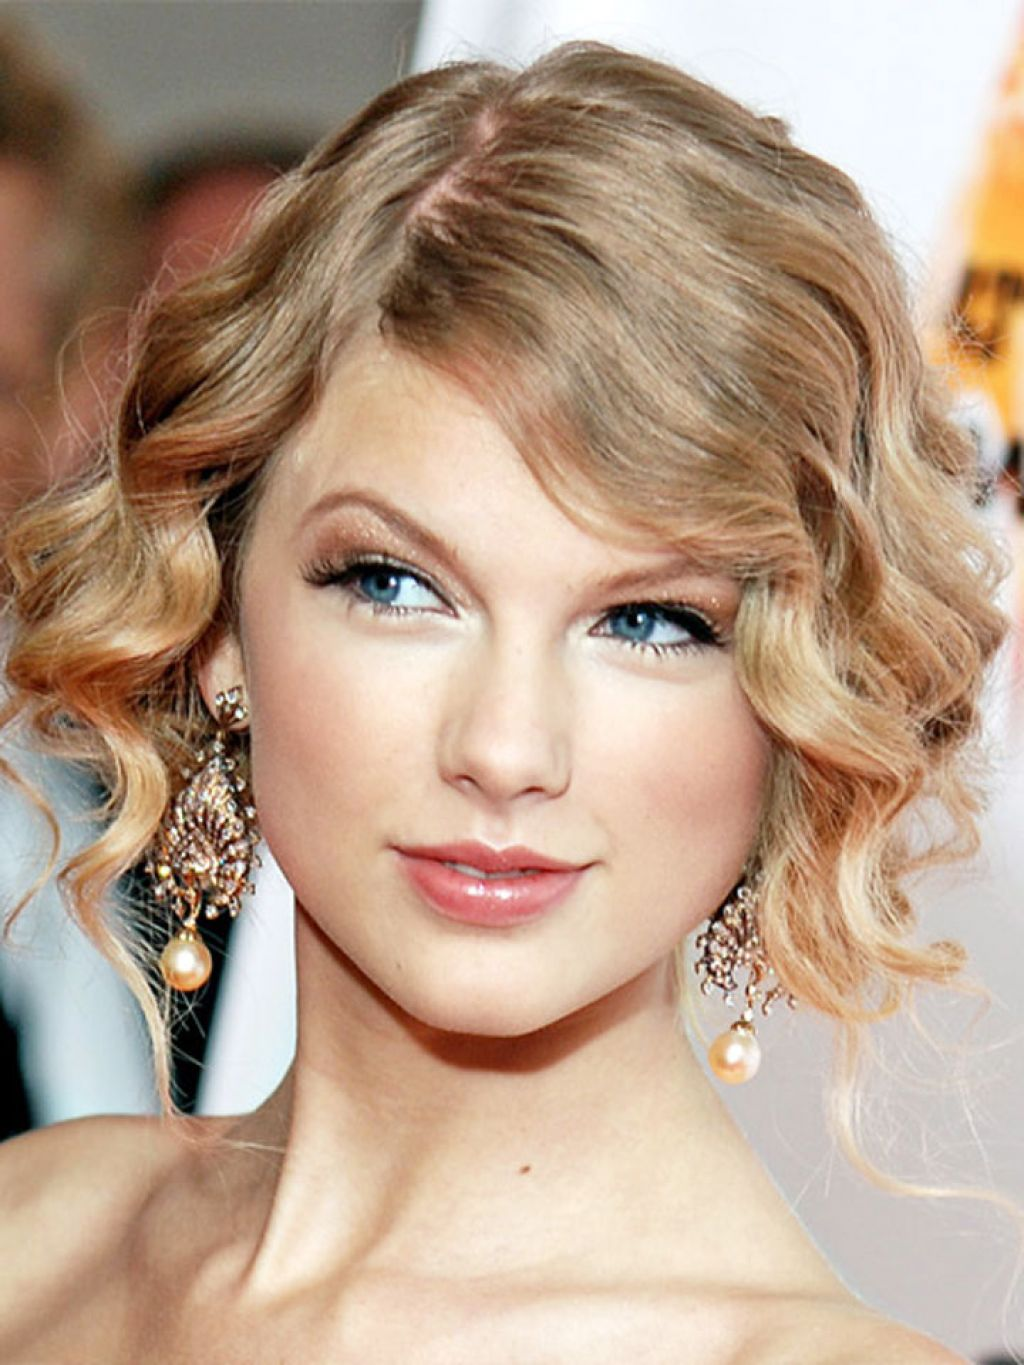 Prom Hairstyles 2017 - 15 Coolest Hair for Women - HAIRSTYLES